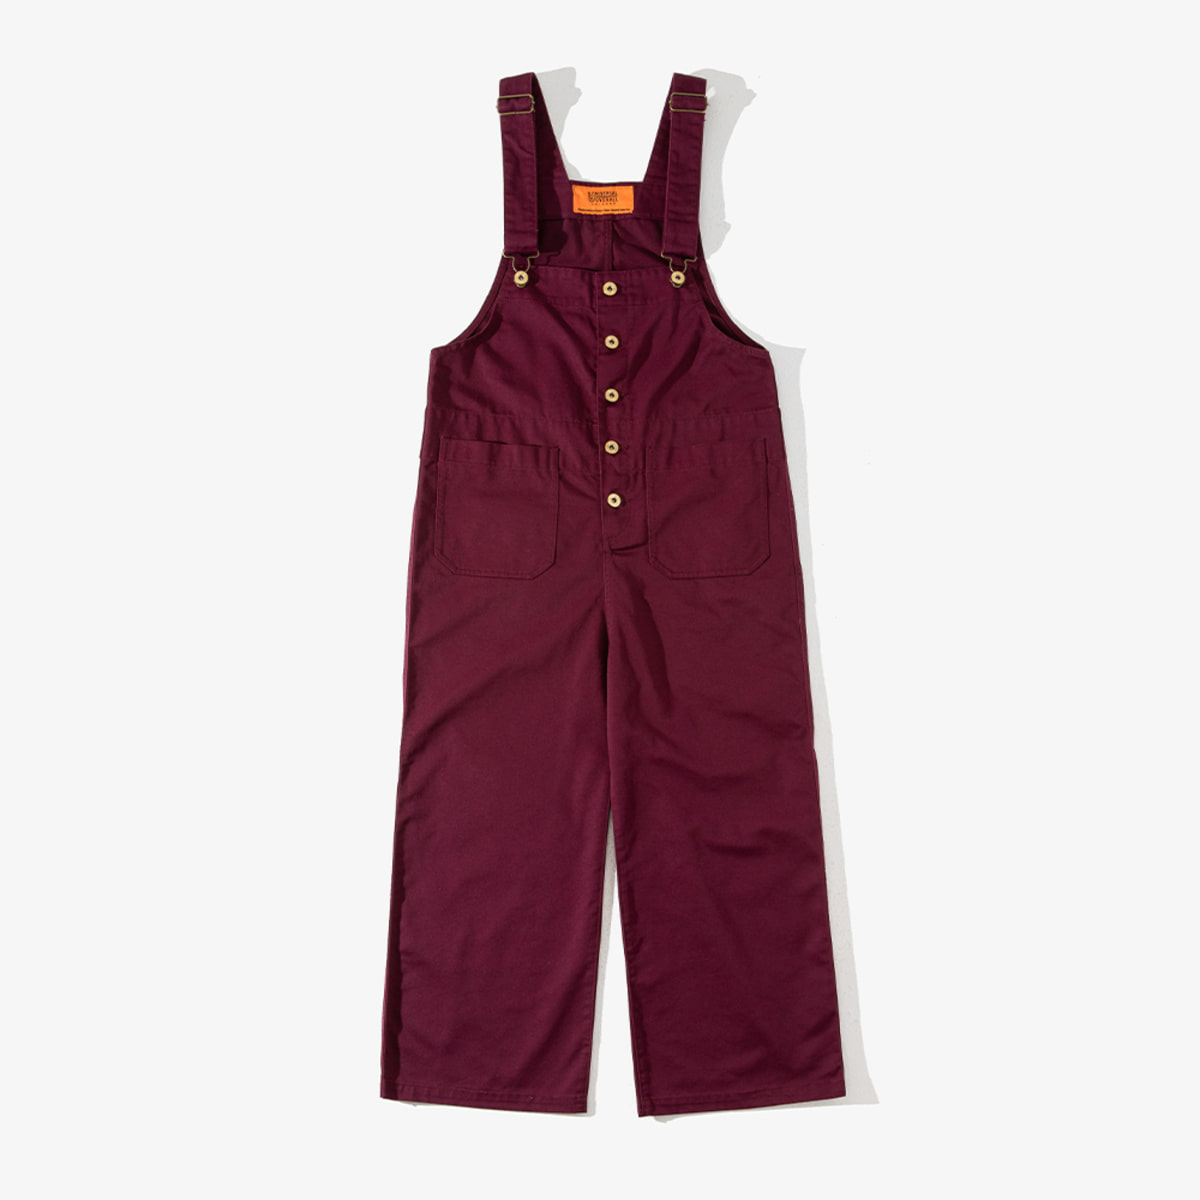 WOMENS BASIC OVERALL BURGUNDY